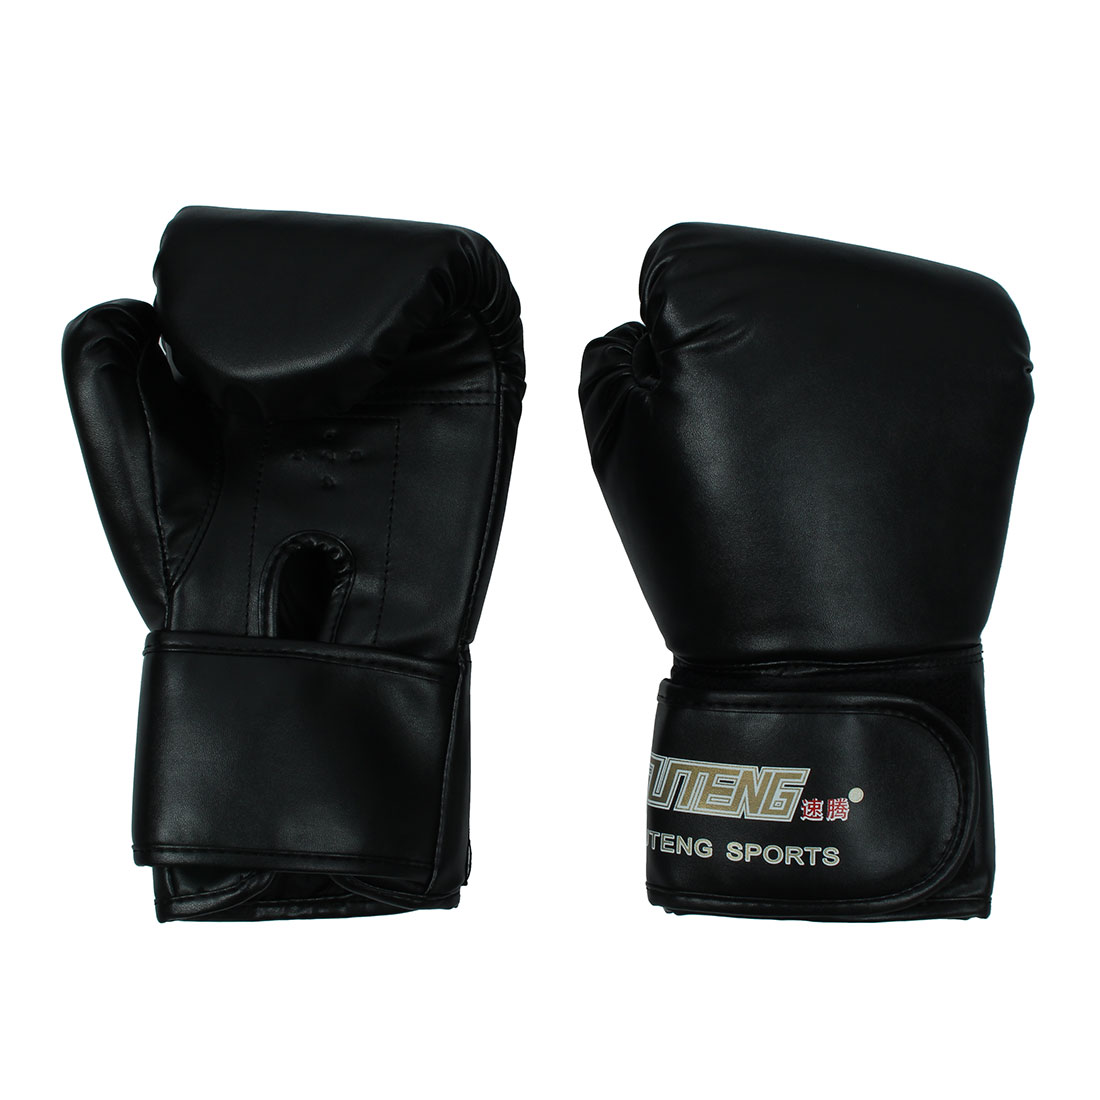 SUTENG Authorized Unisex Punching Bag Mitts Training Boxing Gloves Black Pair by Unique-Bargains